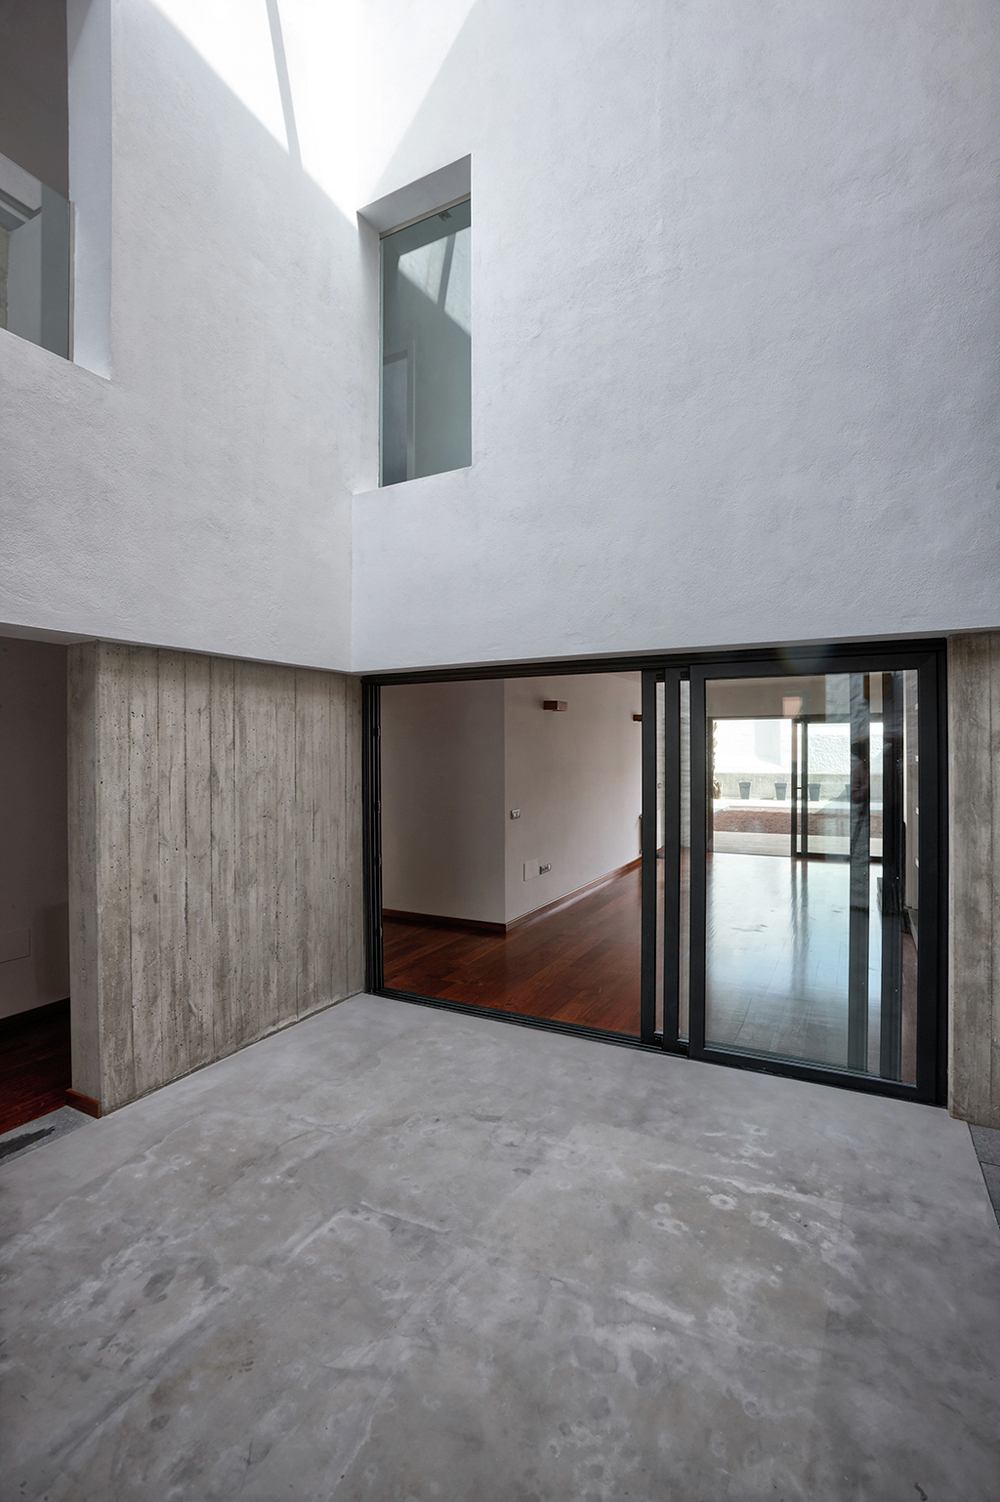 Gallery of housing in canary islands alejandro beautell 8 - Alejandro beautell ...